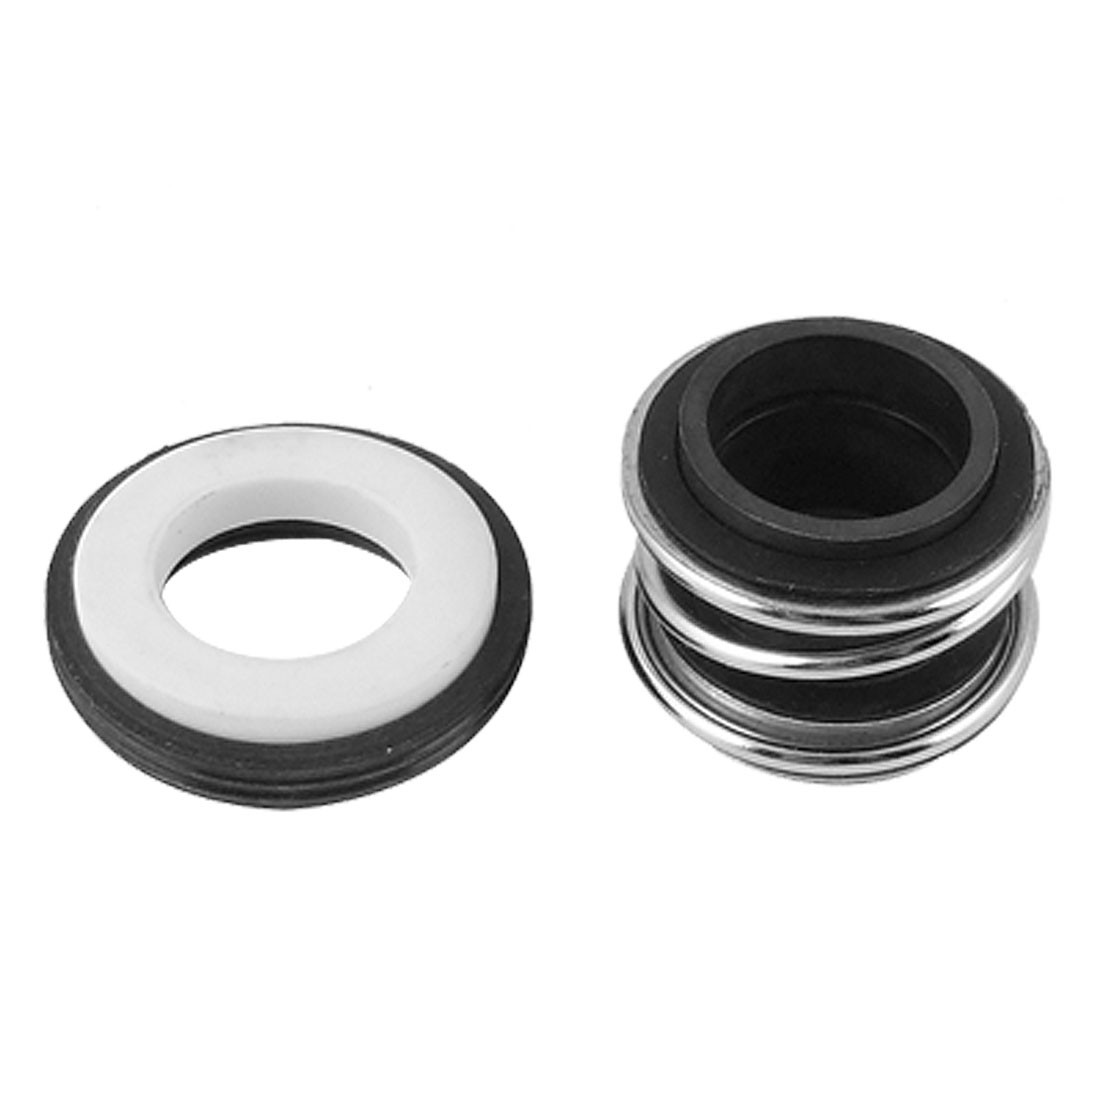 15mm MB1-15 Single Spring Button Bellows Mechanical Seal